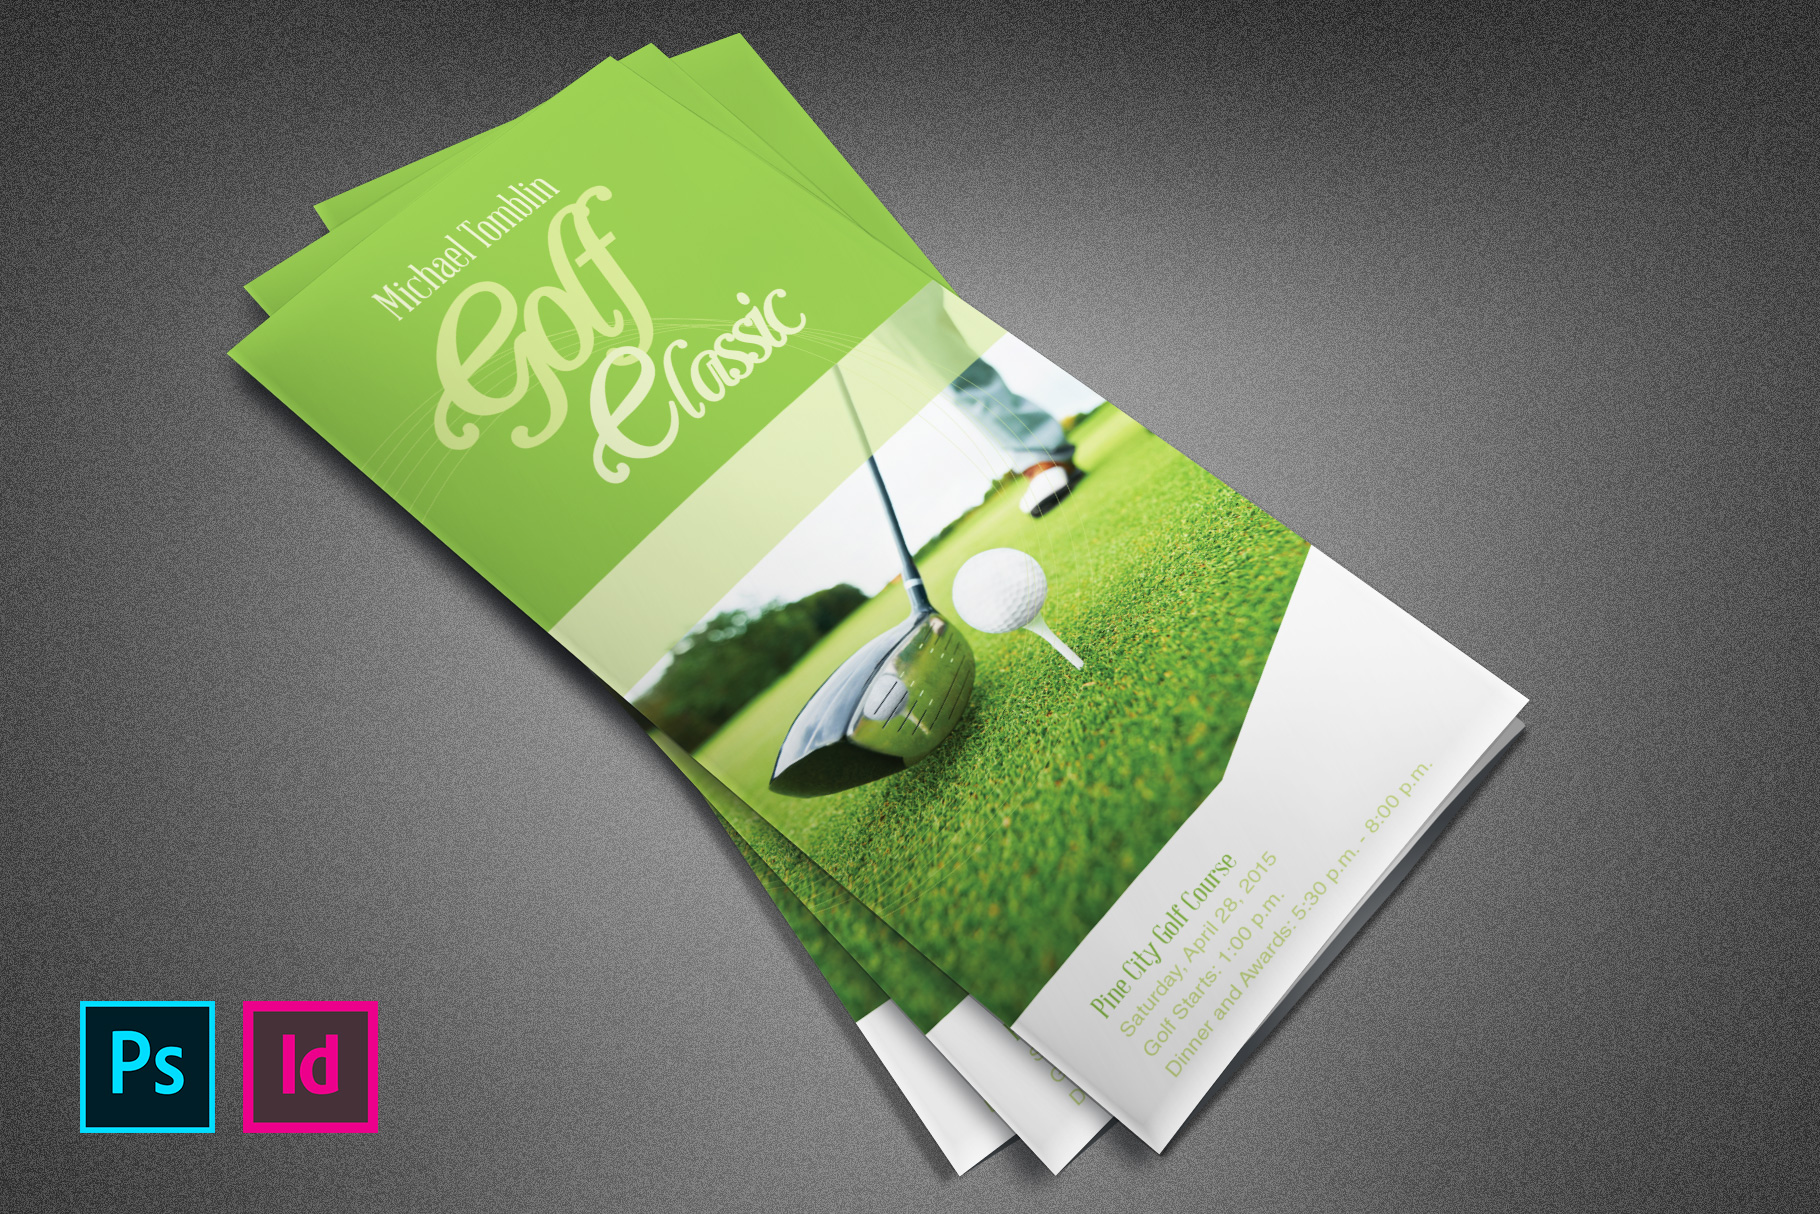 Golf Classic Event Tri-fold Brochure example image 1